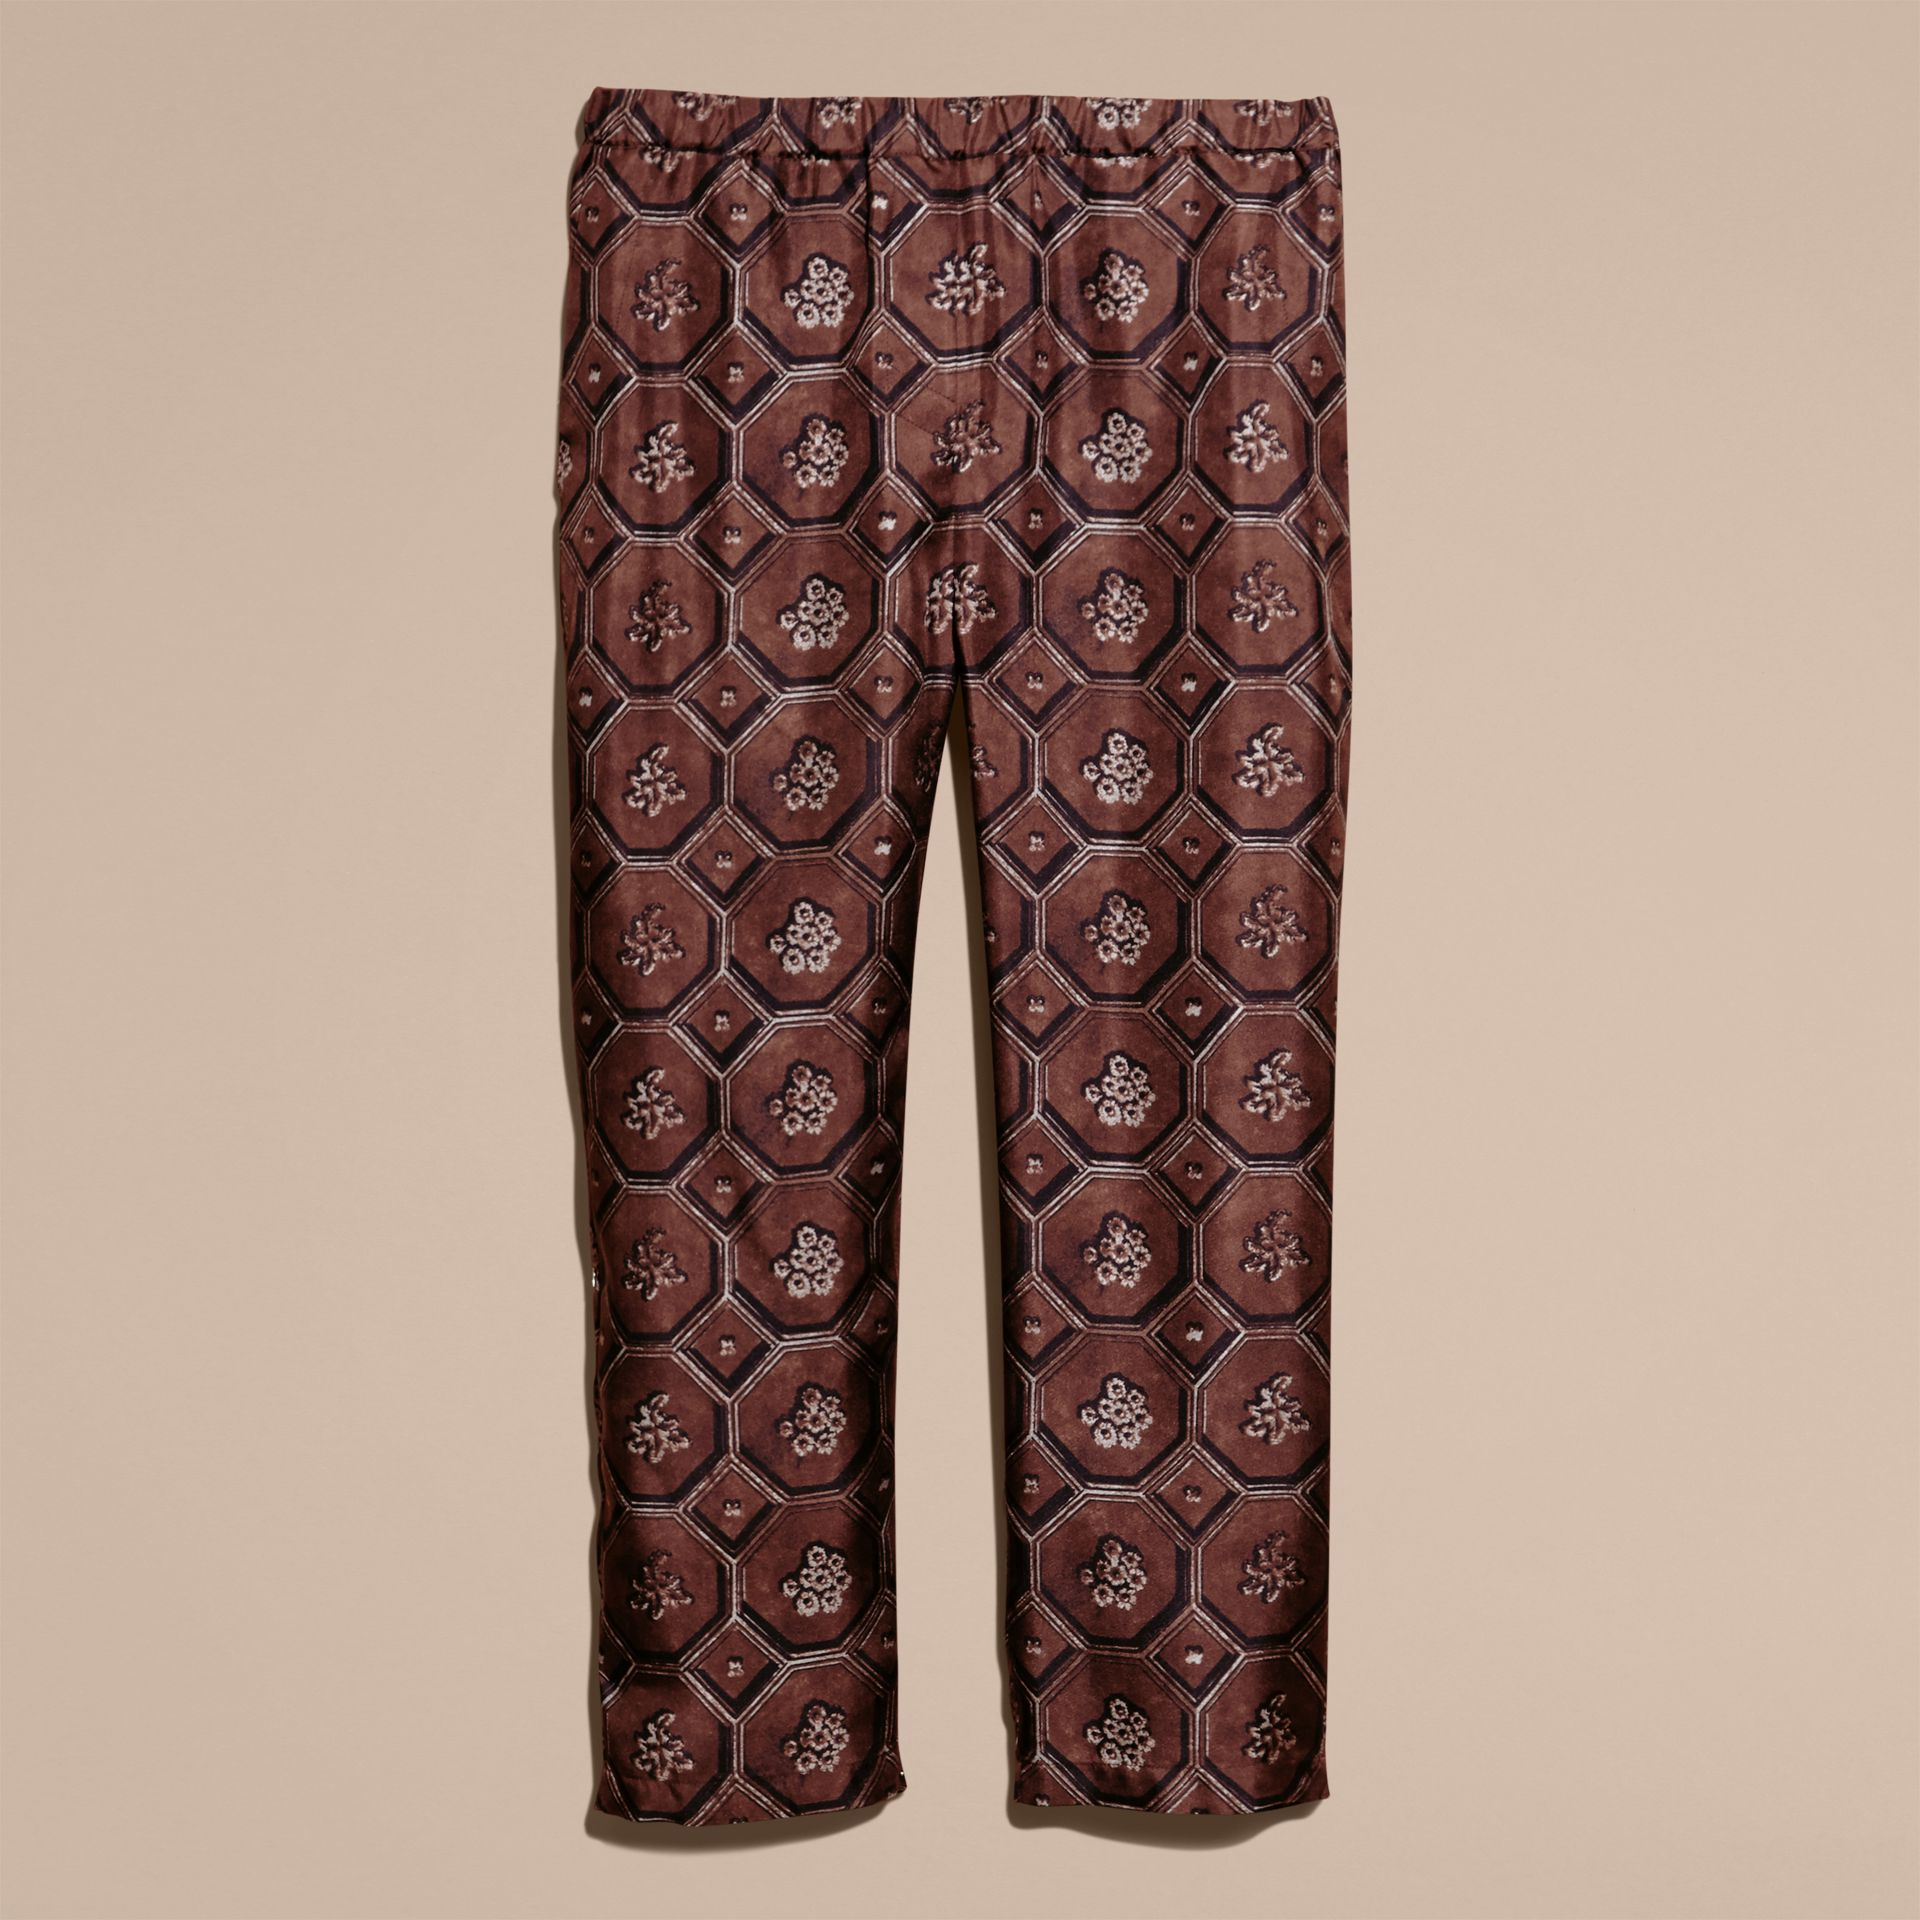 Deep claret Geometric Wallpaper Print Silk Twill Cropped Pyjama-style Trousers Deep Claret - gallery image 4